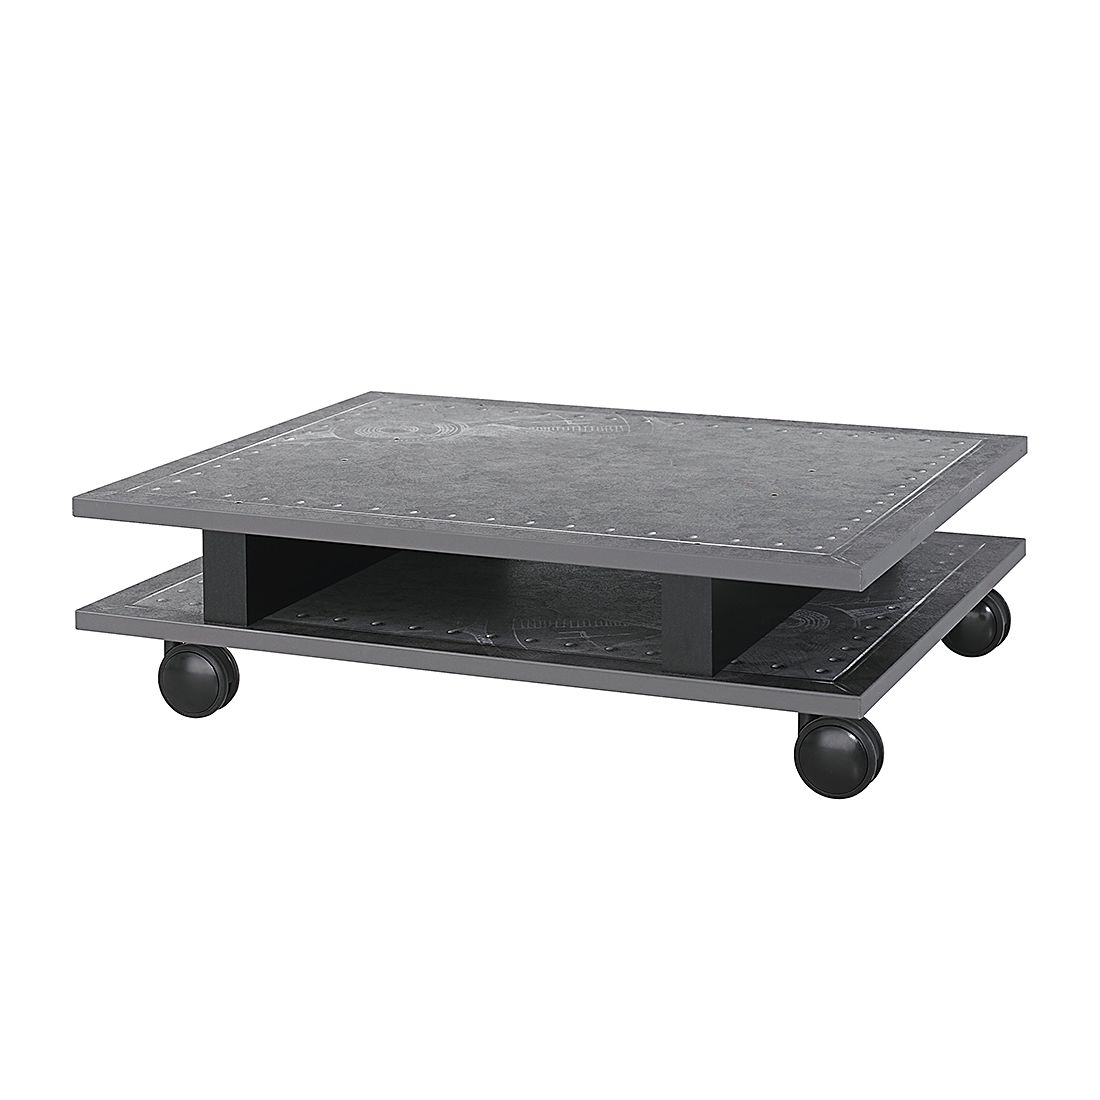 Table basse Workbase - Aspect imprimé industriel, Rauch Select